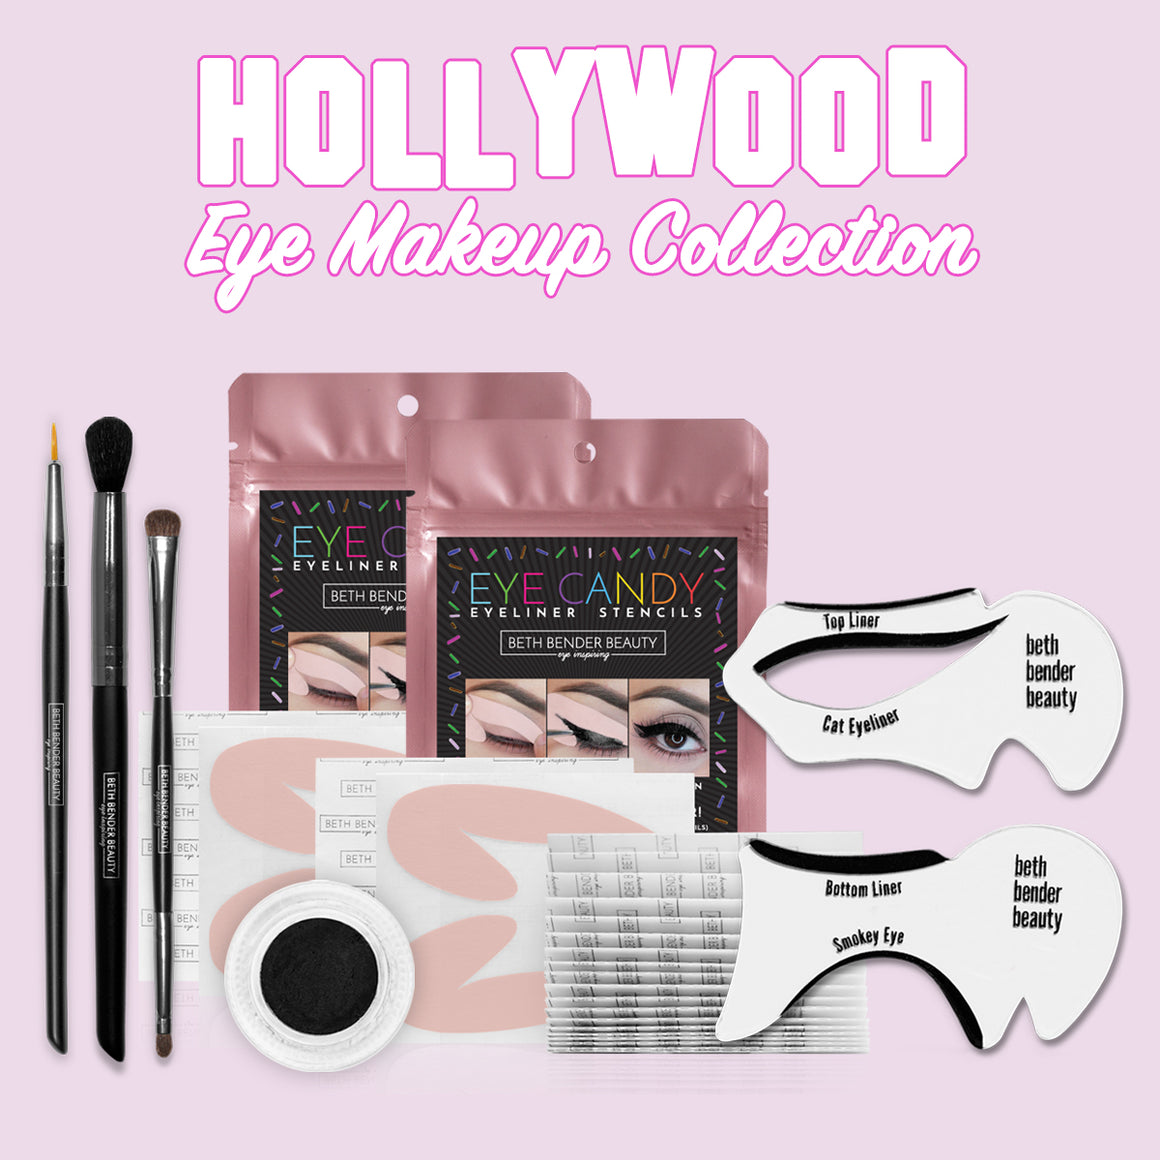 The Hollywood Eye Makeup Collection